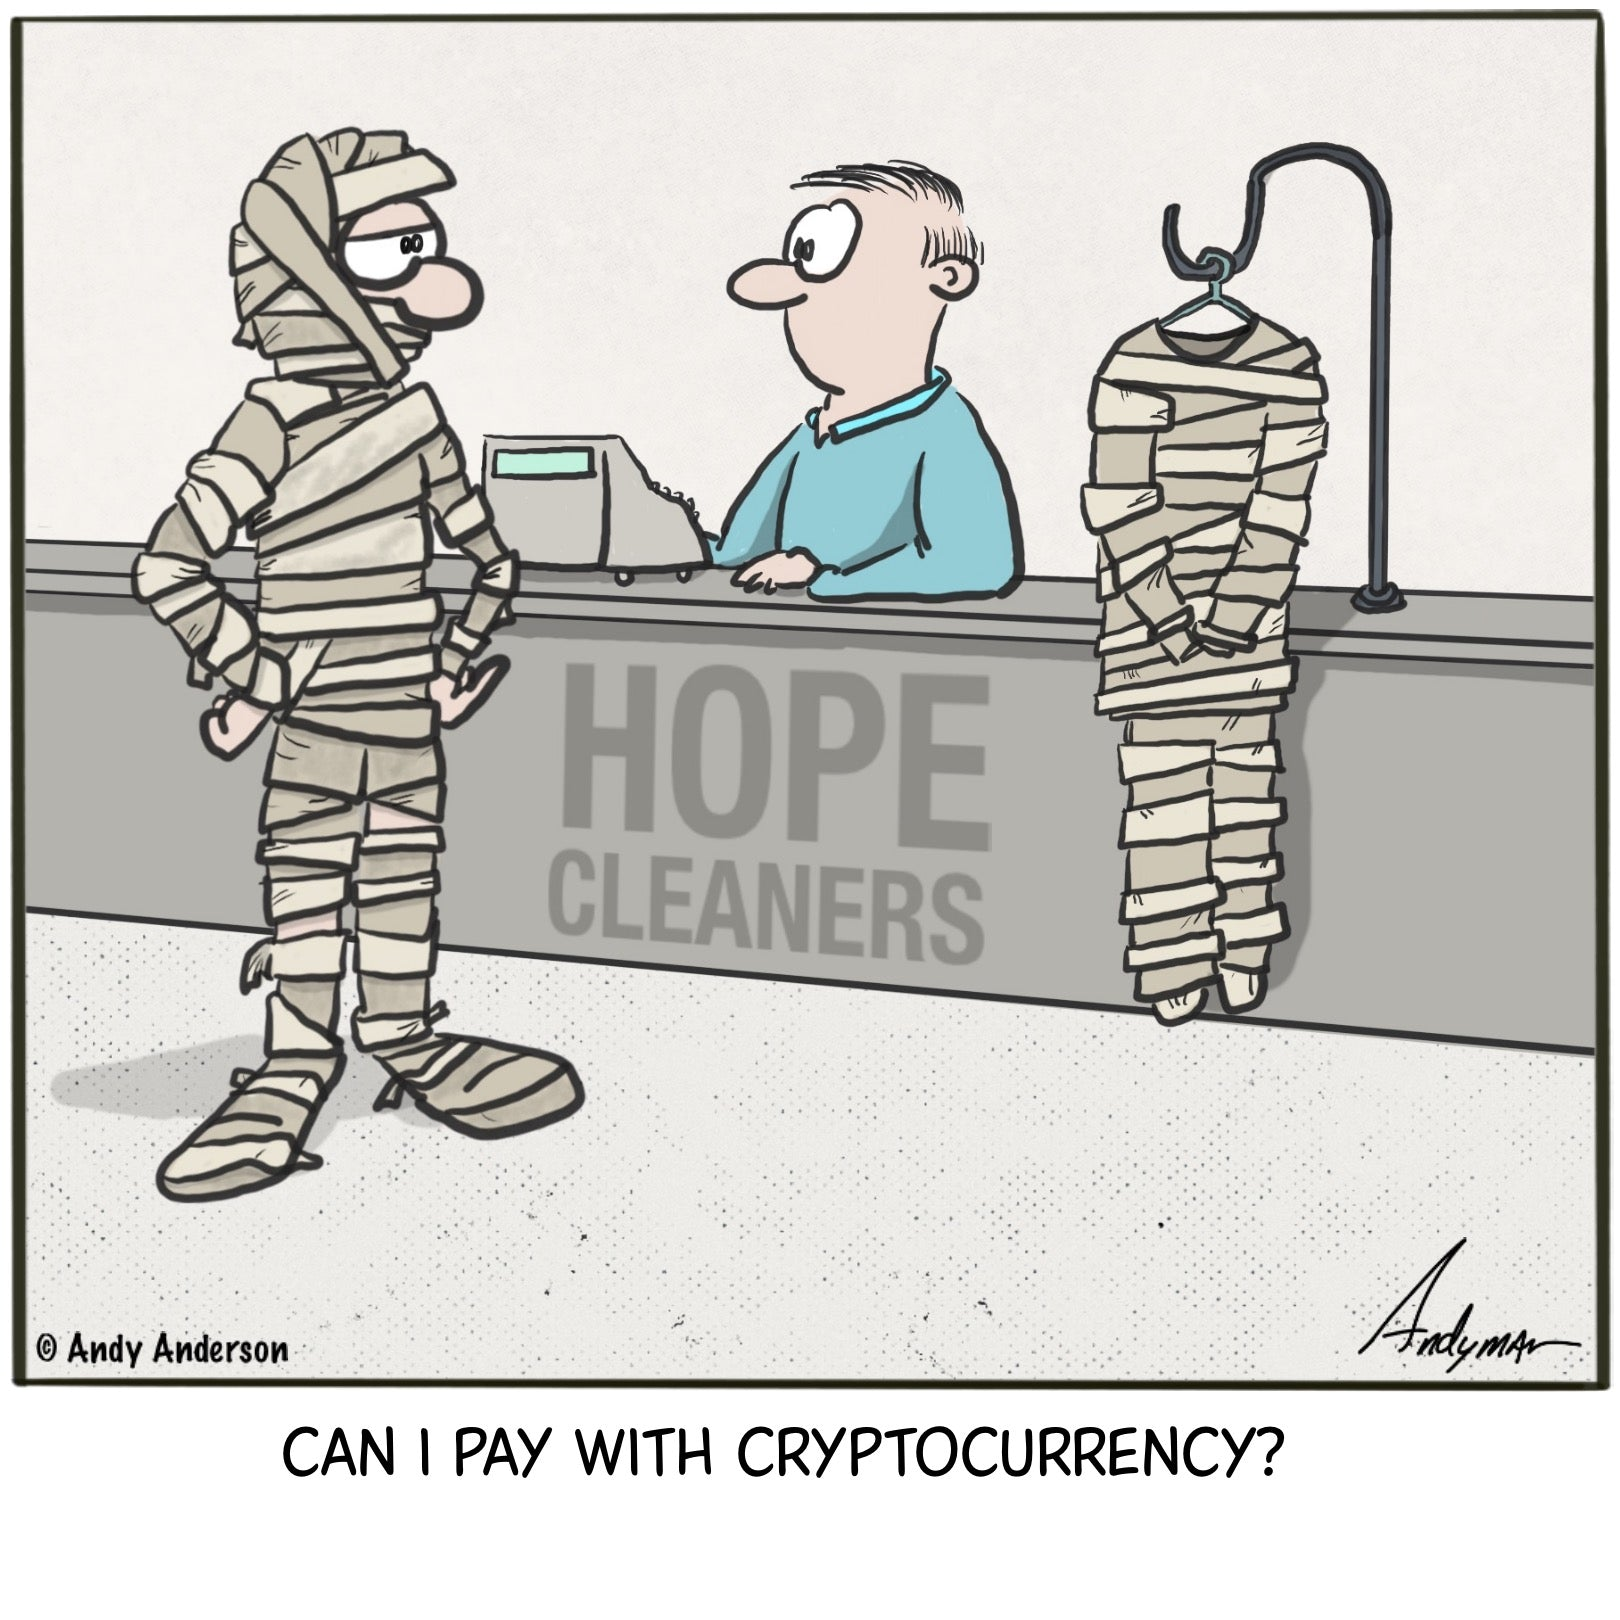 Can I pay with cryptocurrency cartoon by Andy Anderson